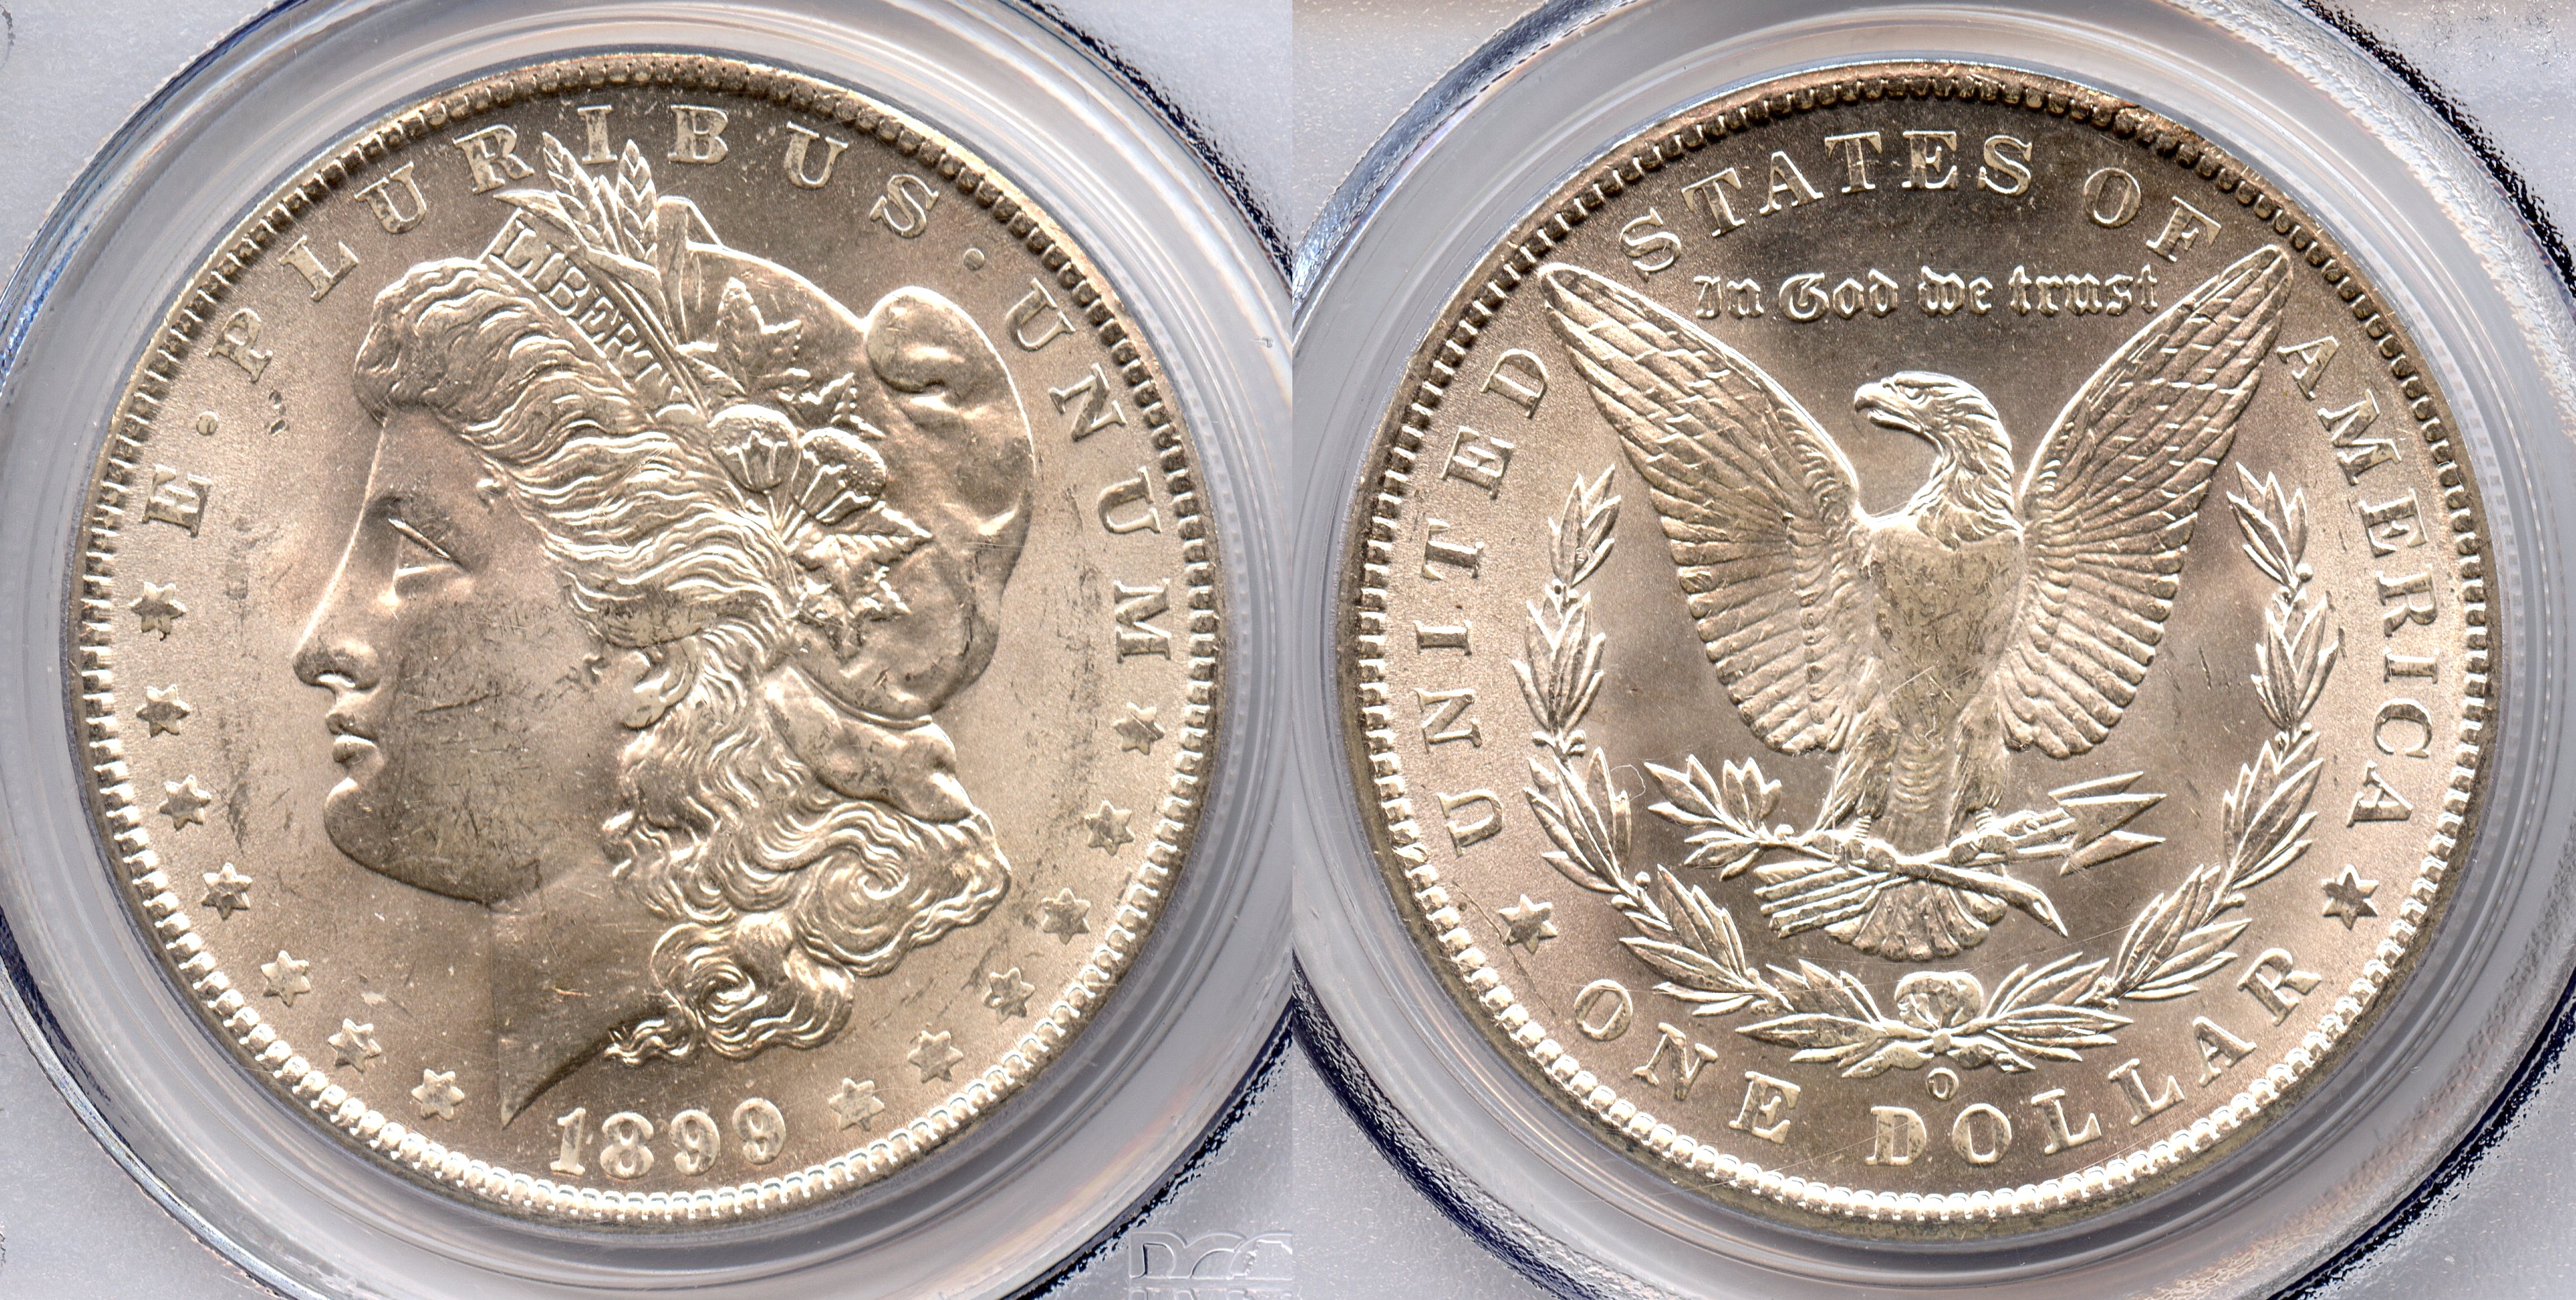 1899-O Morgan Silver Dollar PCGS MS-63